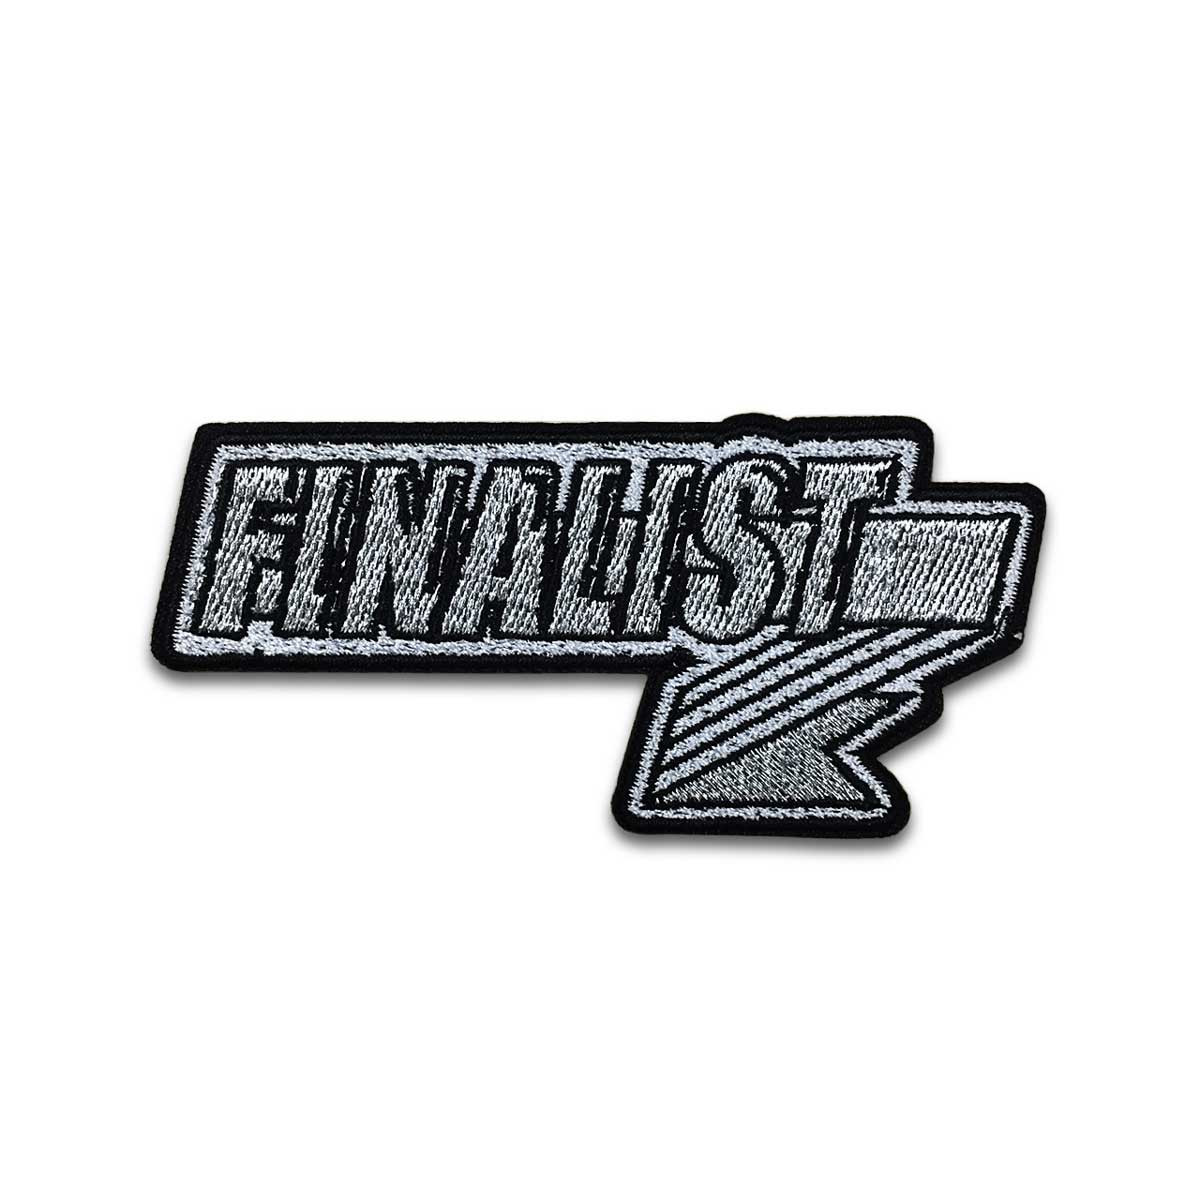 Finalist Patch